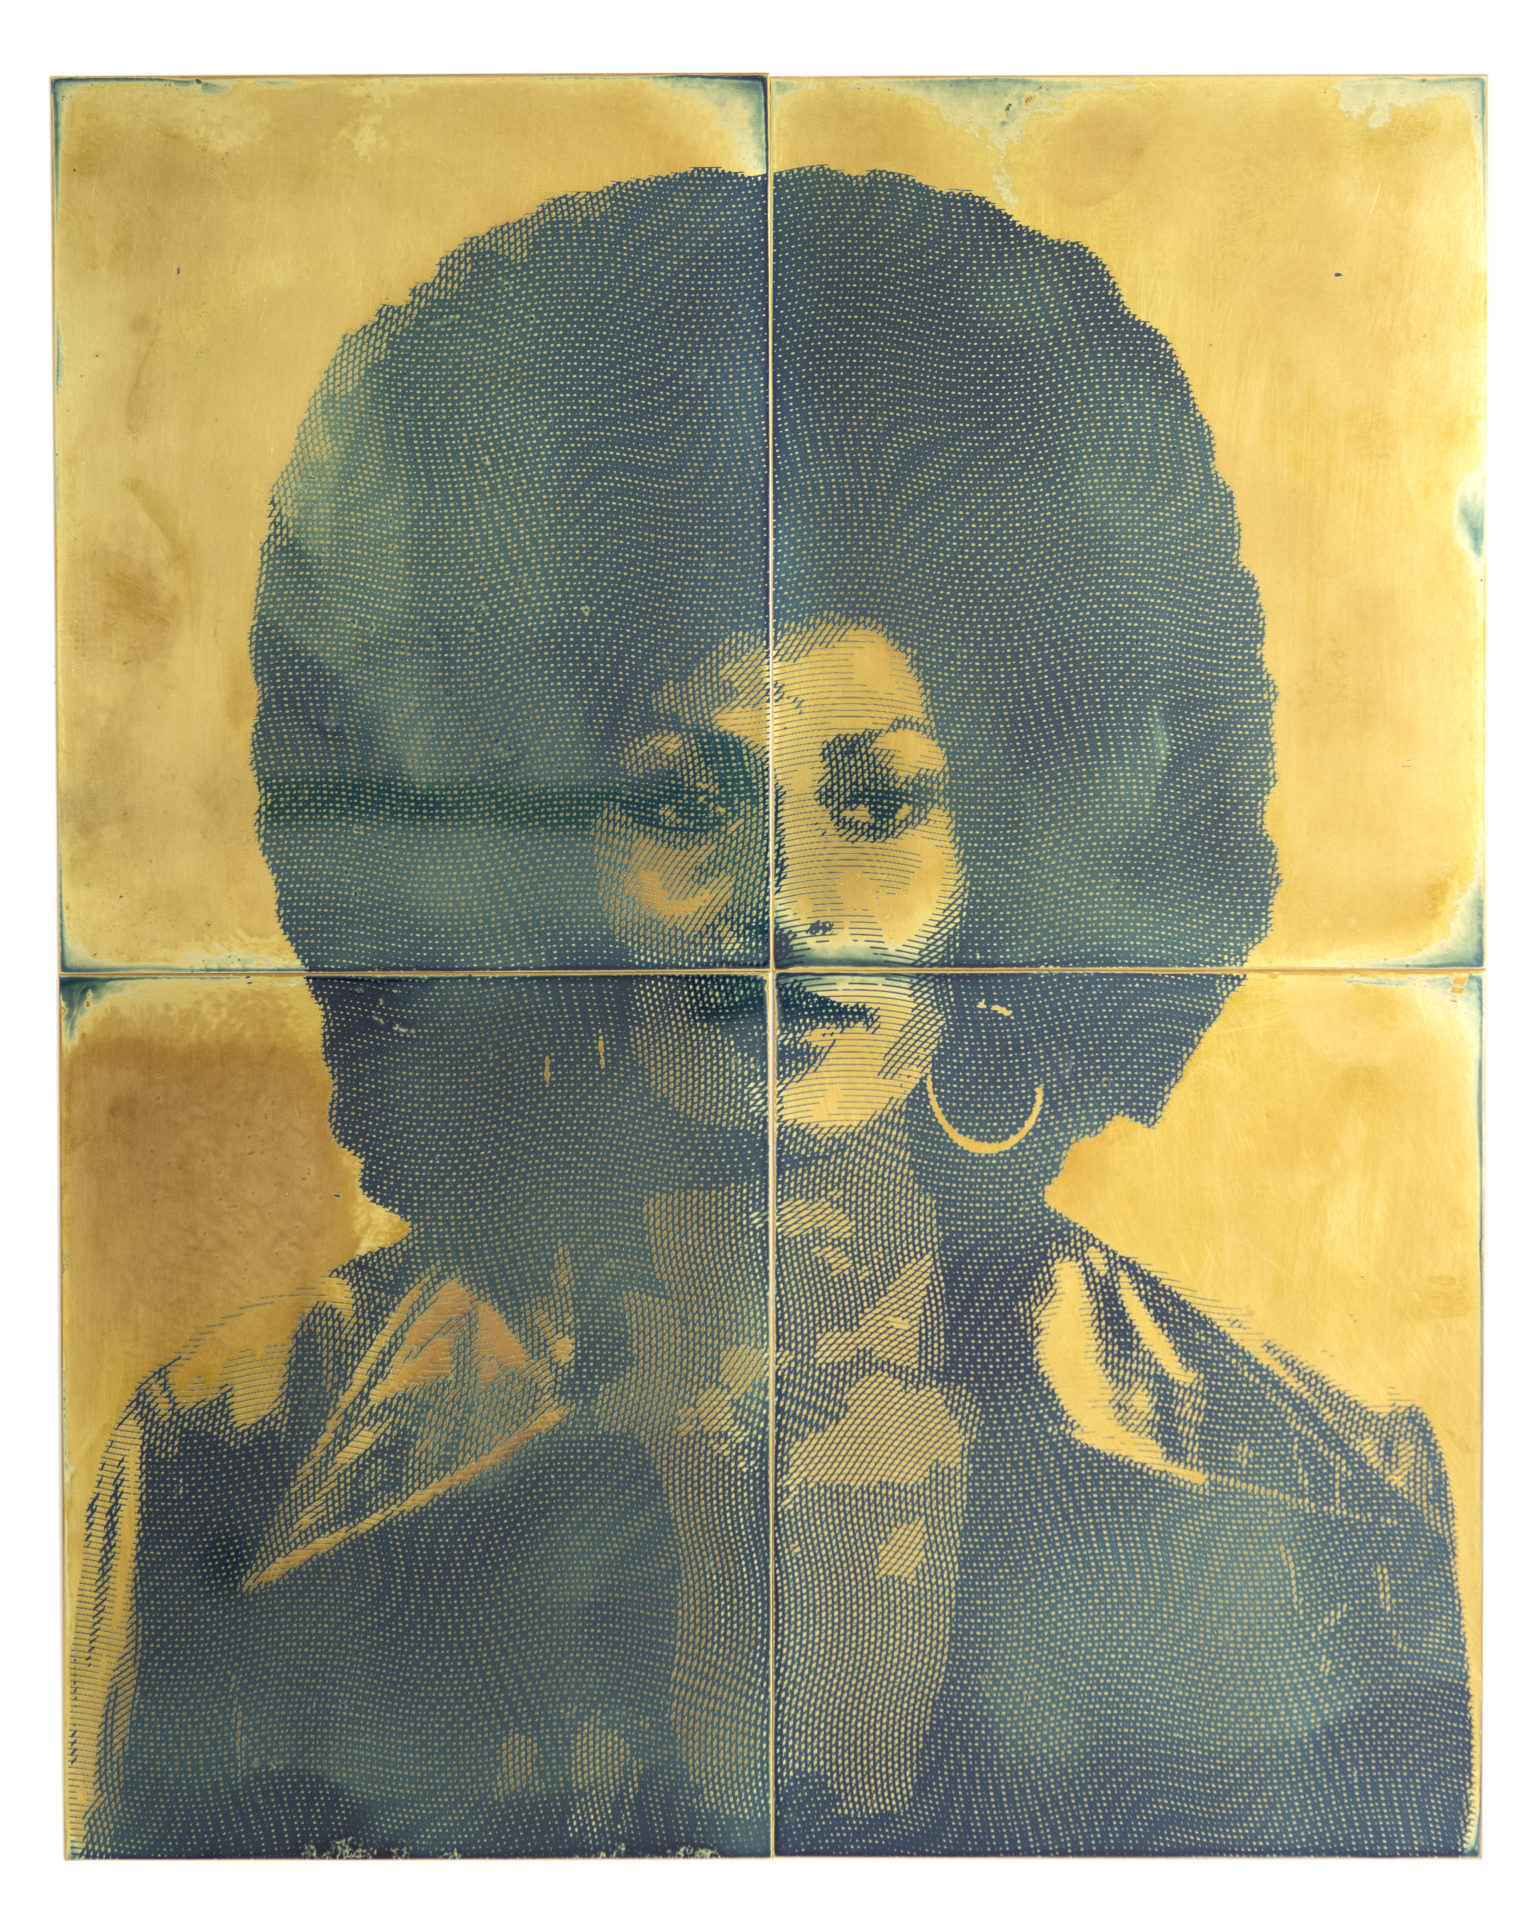 Blaxpotation: Pam Grier, émulsion photosensible sur laiton, 38 x 48 cm, 2018